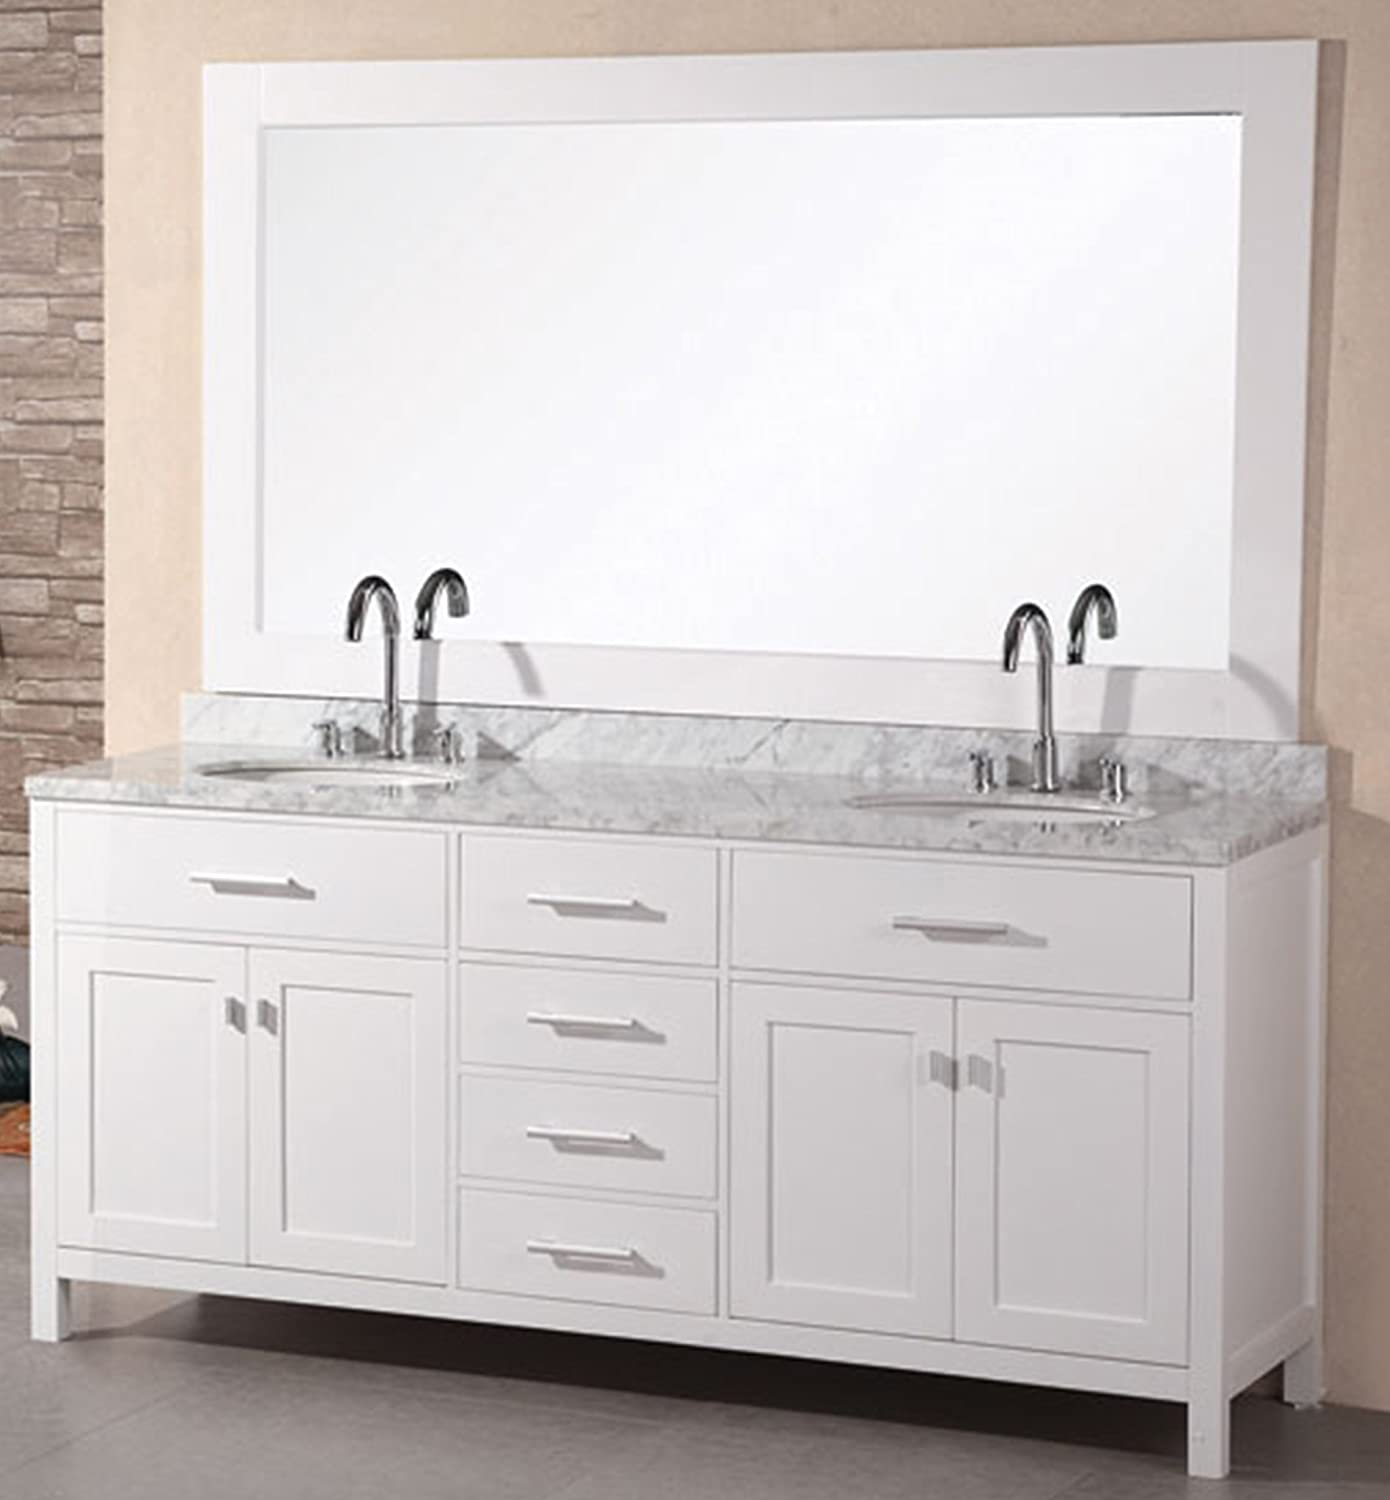 Free shipping design element dec076b w london 72 inch for Design element marcos solid wood double sink bathroom vanity